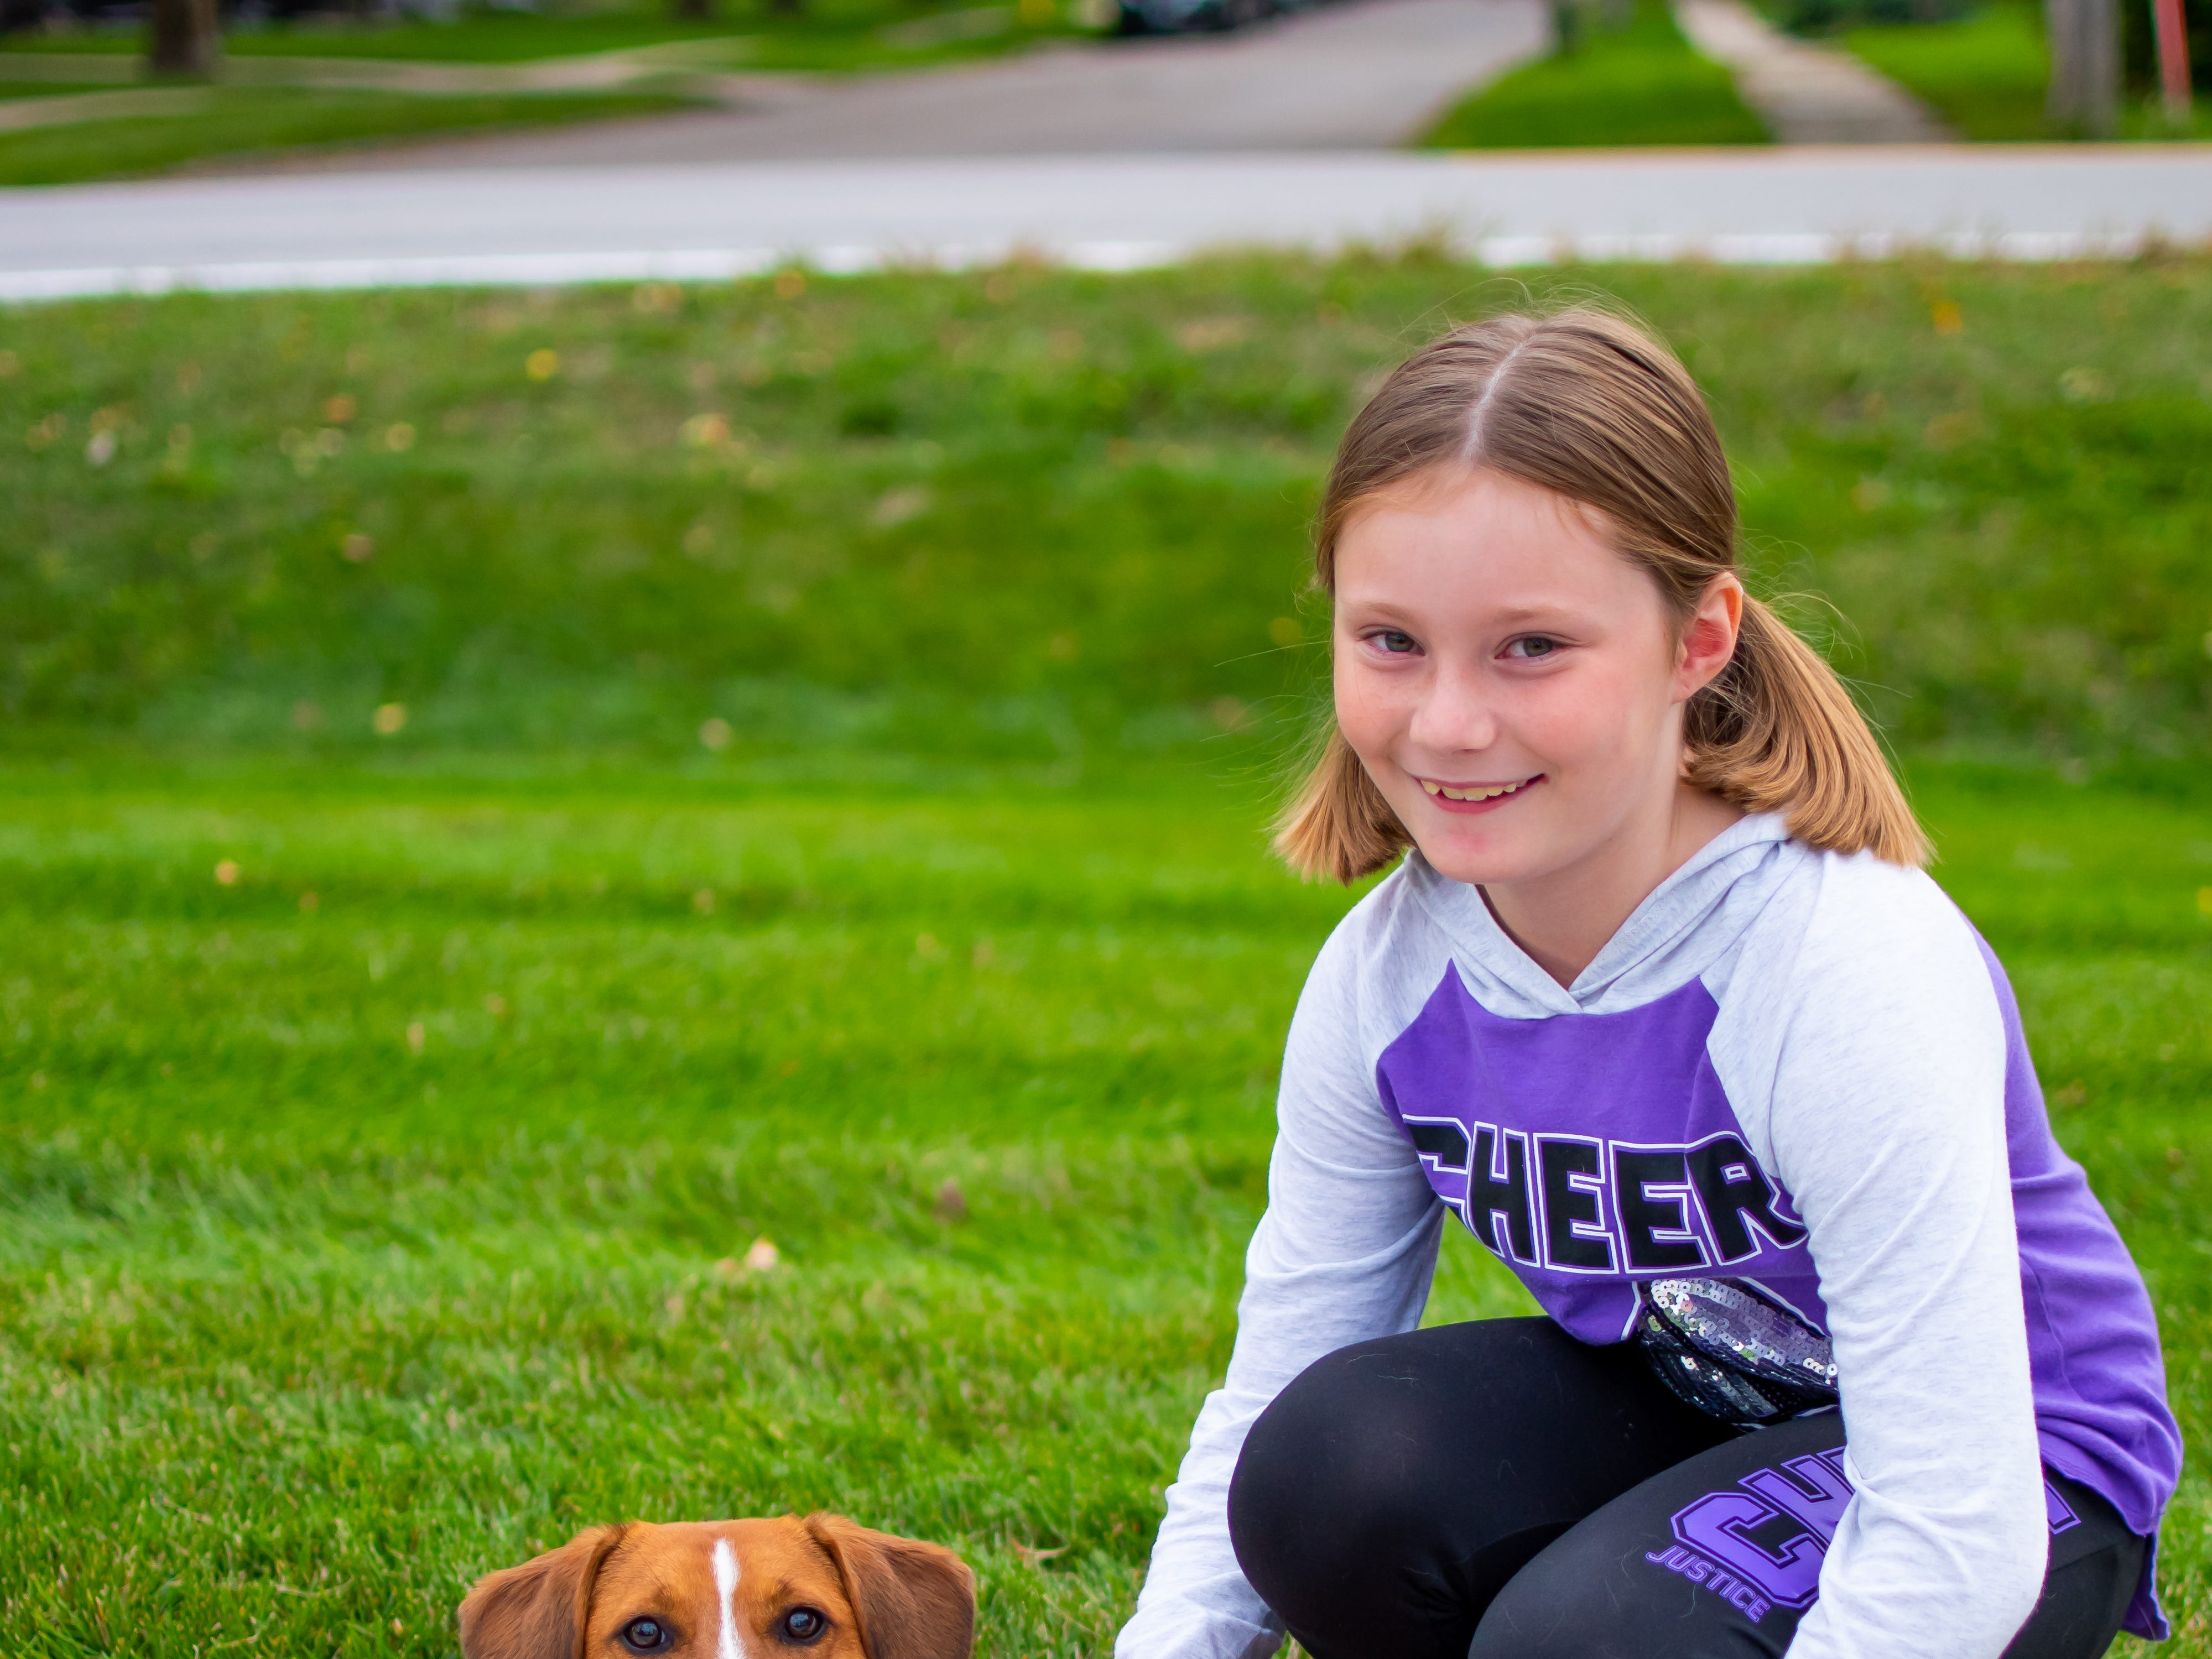 Kendall Curran, 9, and Lexie, both of Waukee wait  for the Waukee Homecoming Parade on Thursday, September 27, 2018 in Waukee.